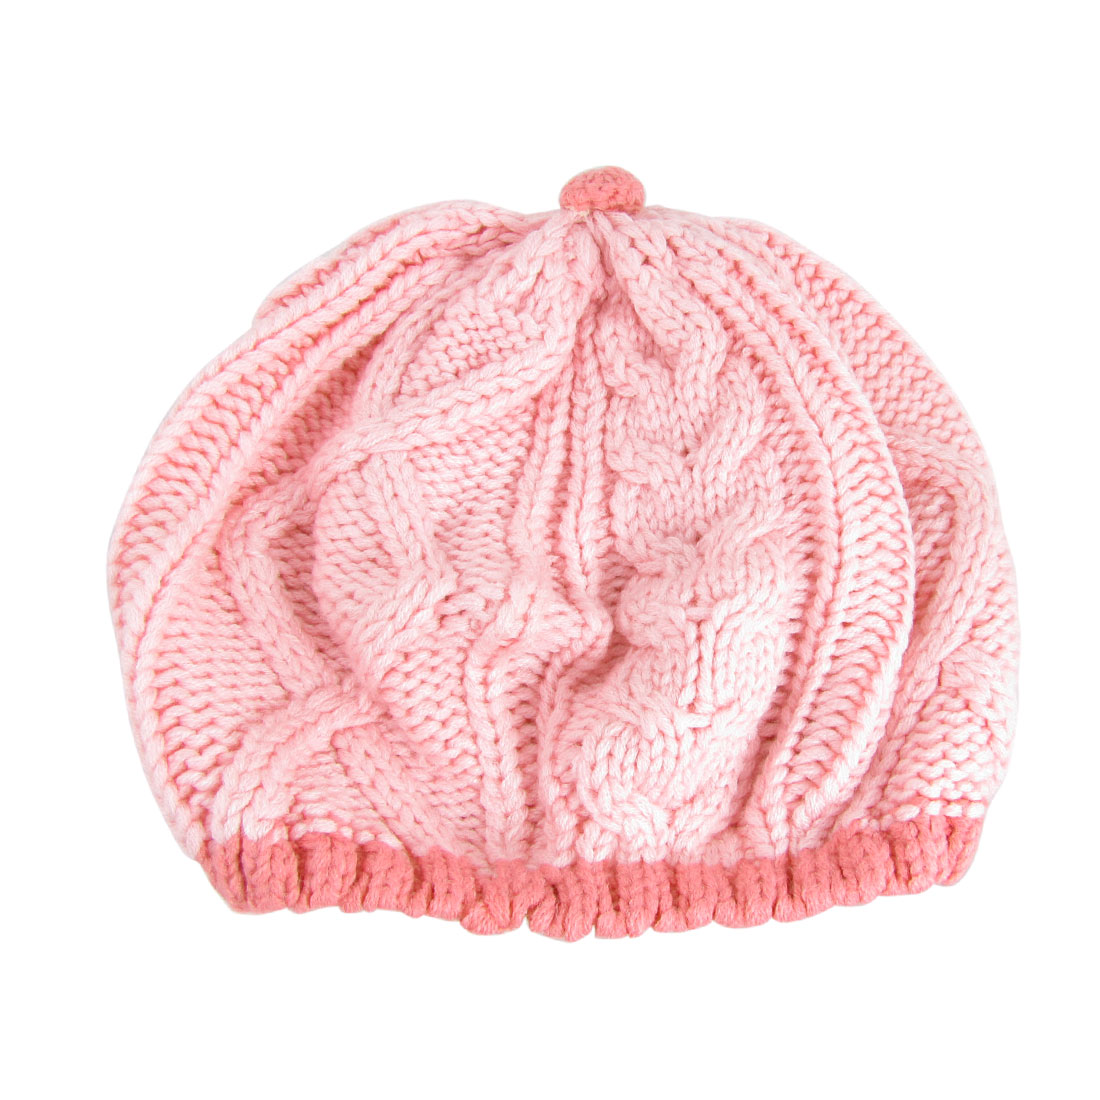 Pink Cabled Knitted Winter Beanie Cap Hat for Ladies